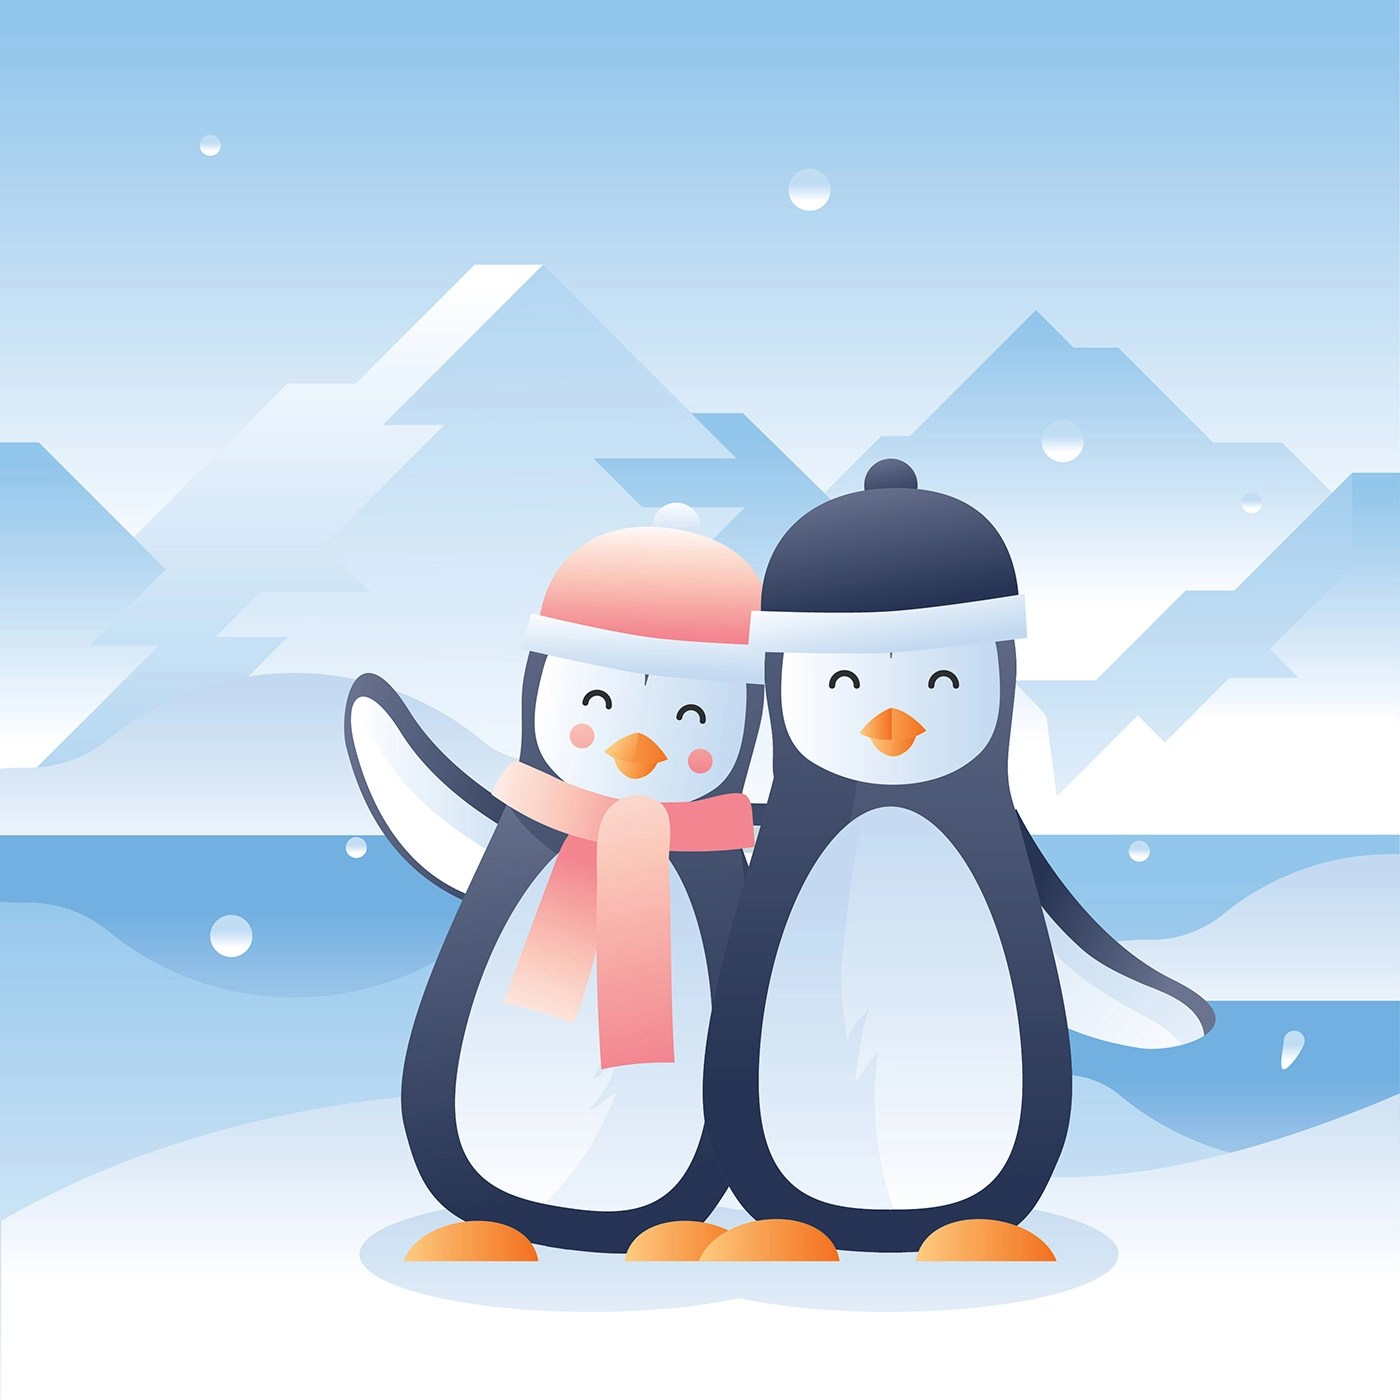 Cute Couple Holding Hand Wallpaper Penguins In Love Vector Download Free Vector Art Stock